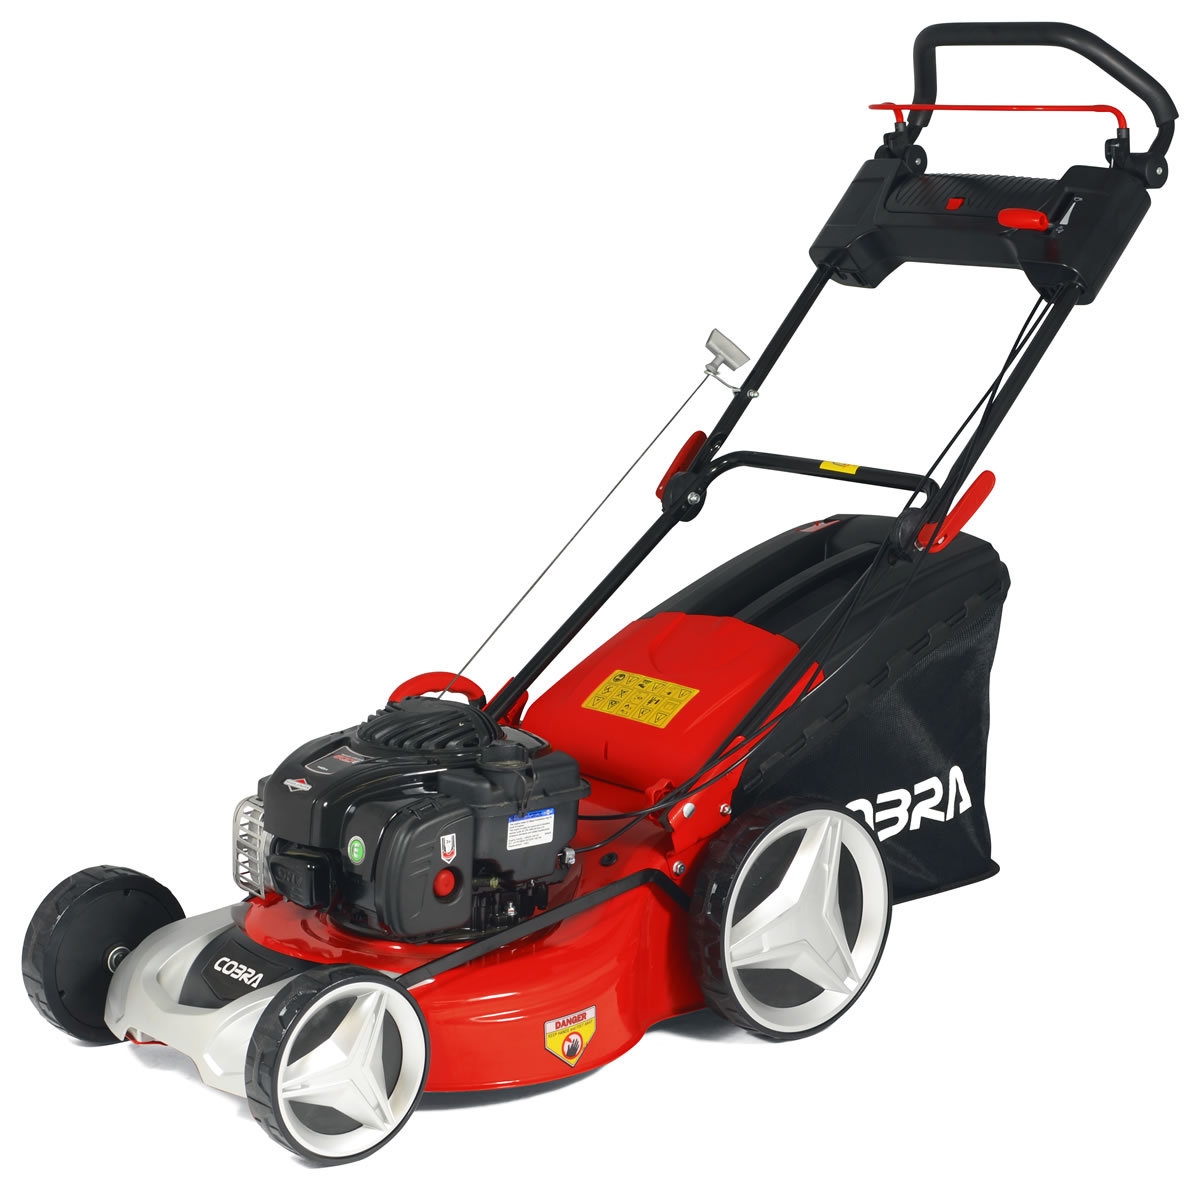 COBRA MX46B Petrol Lawn Mower